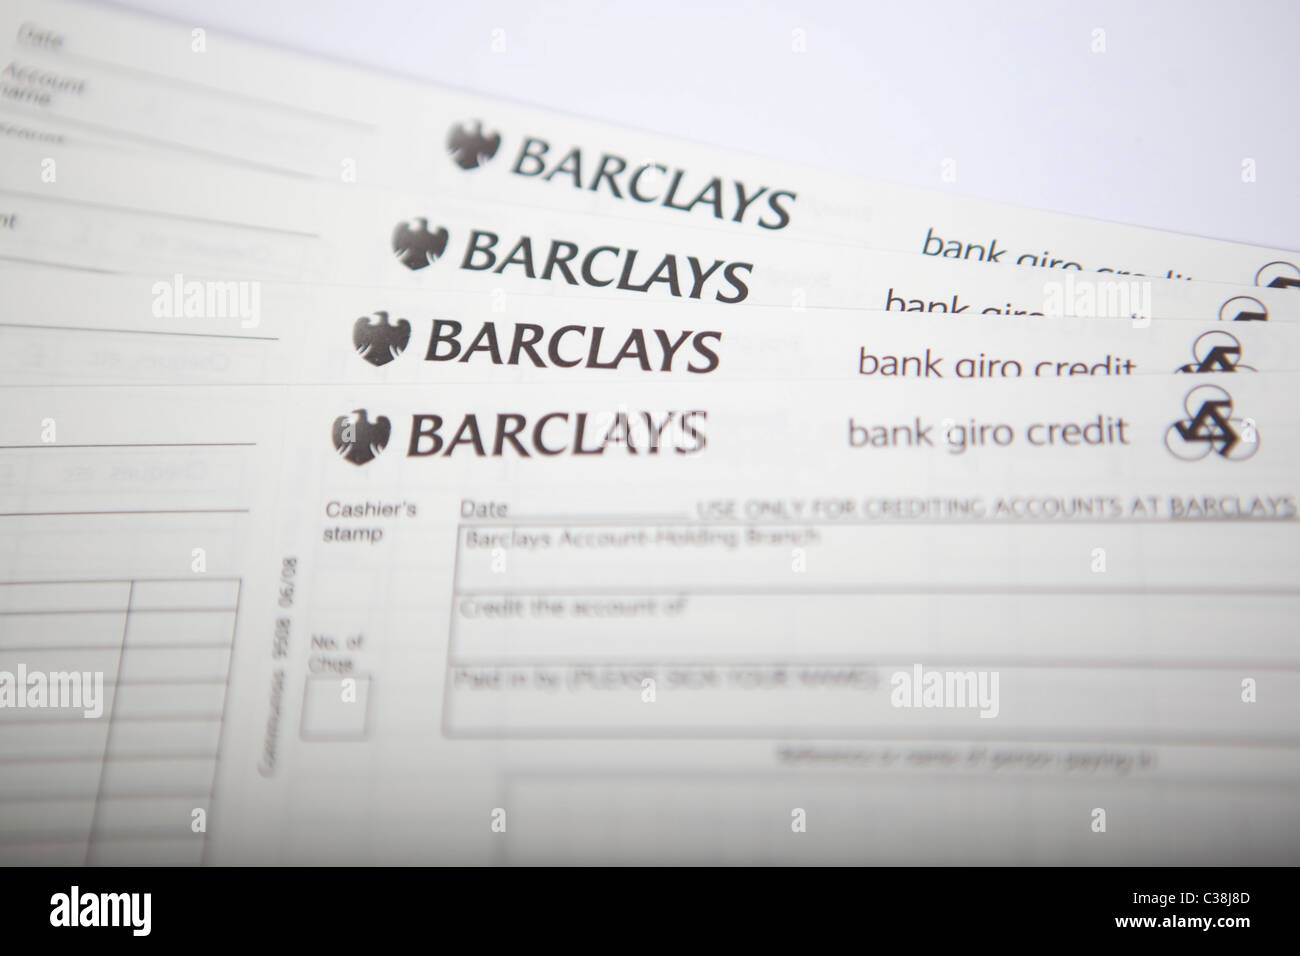 Barclays Paying In Slips  Pay In Slips